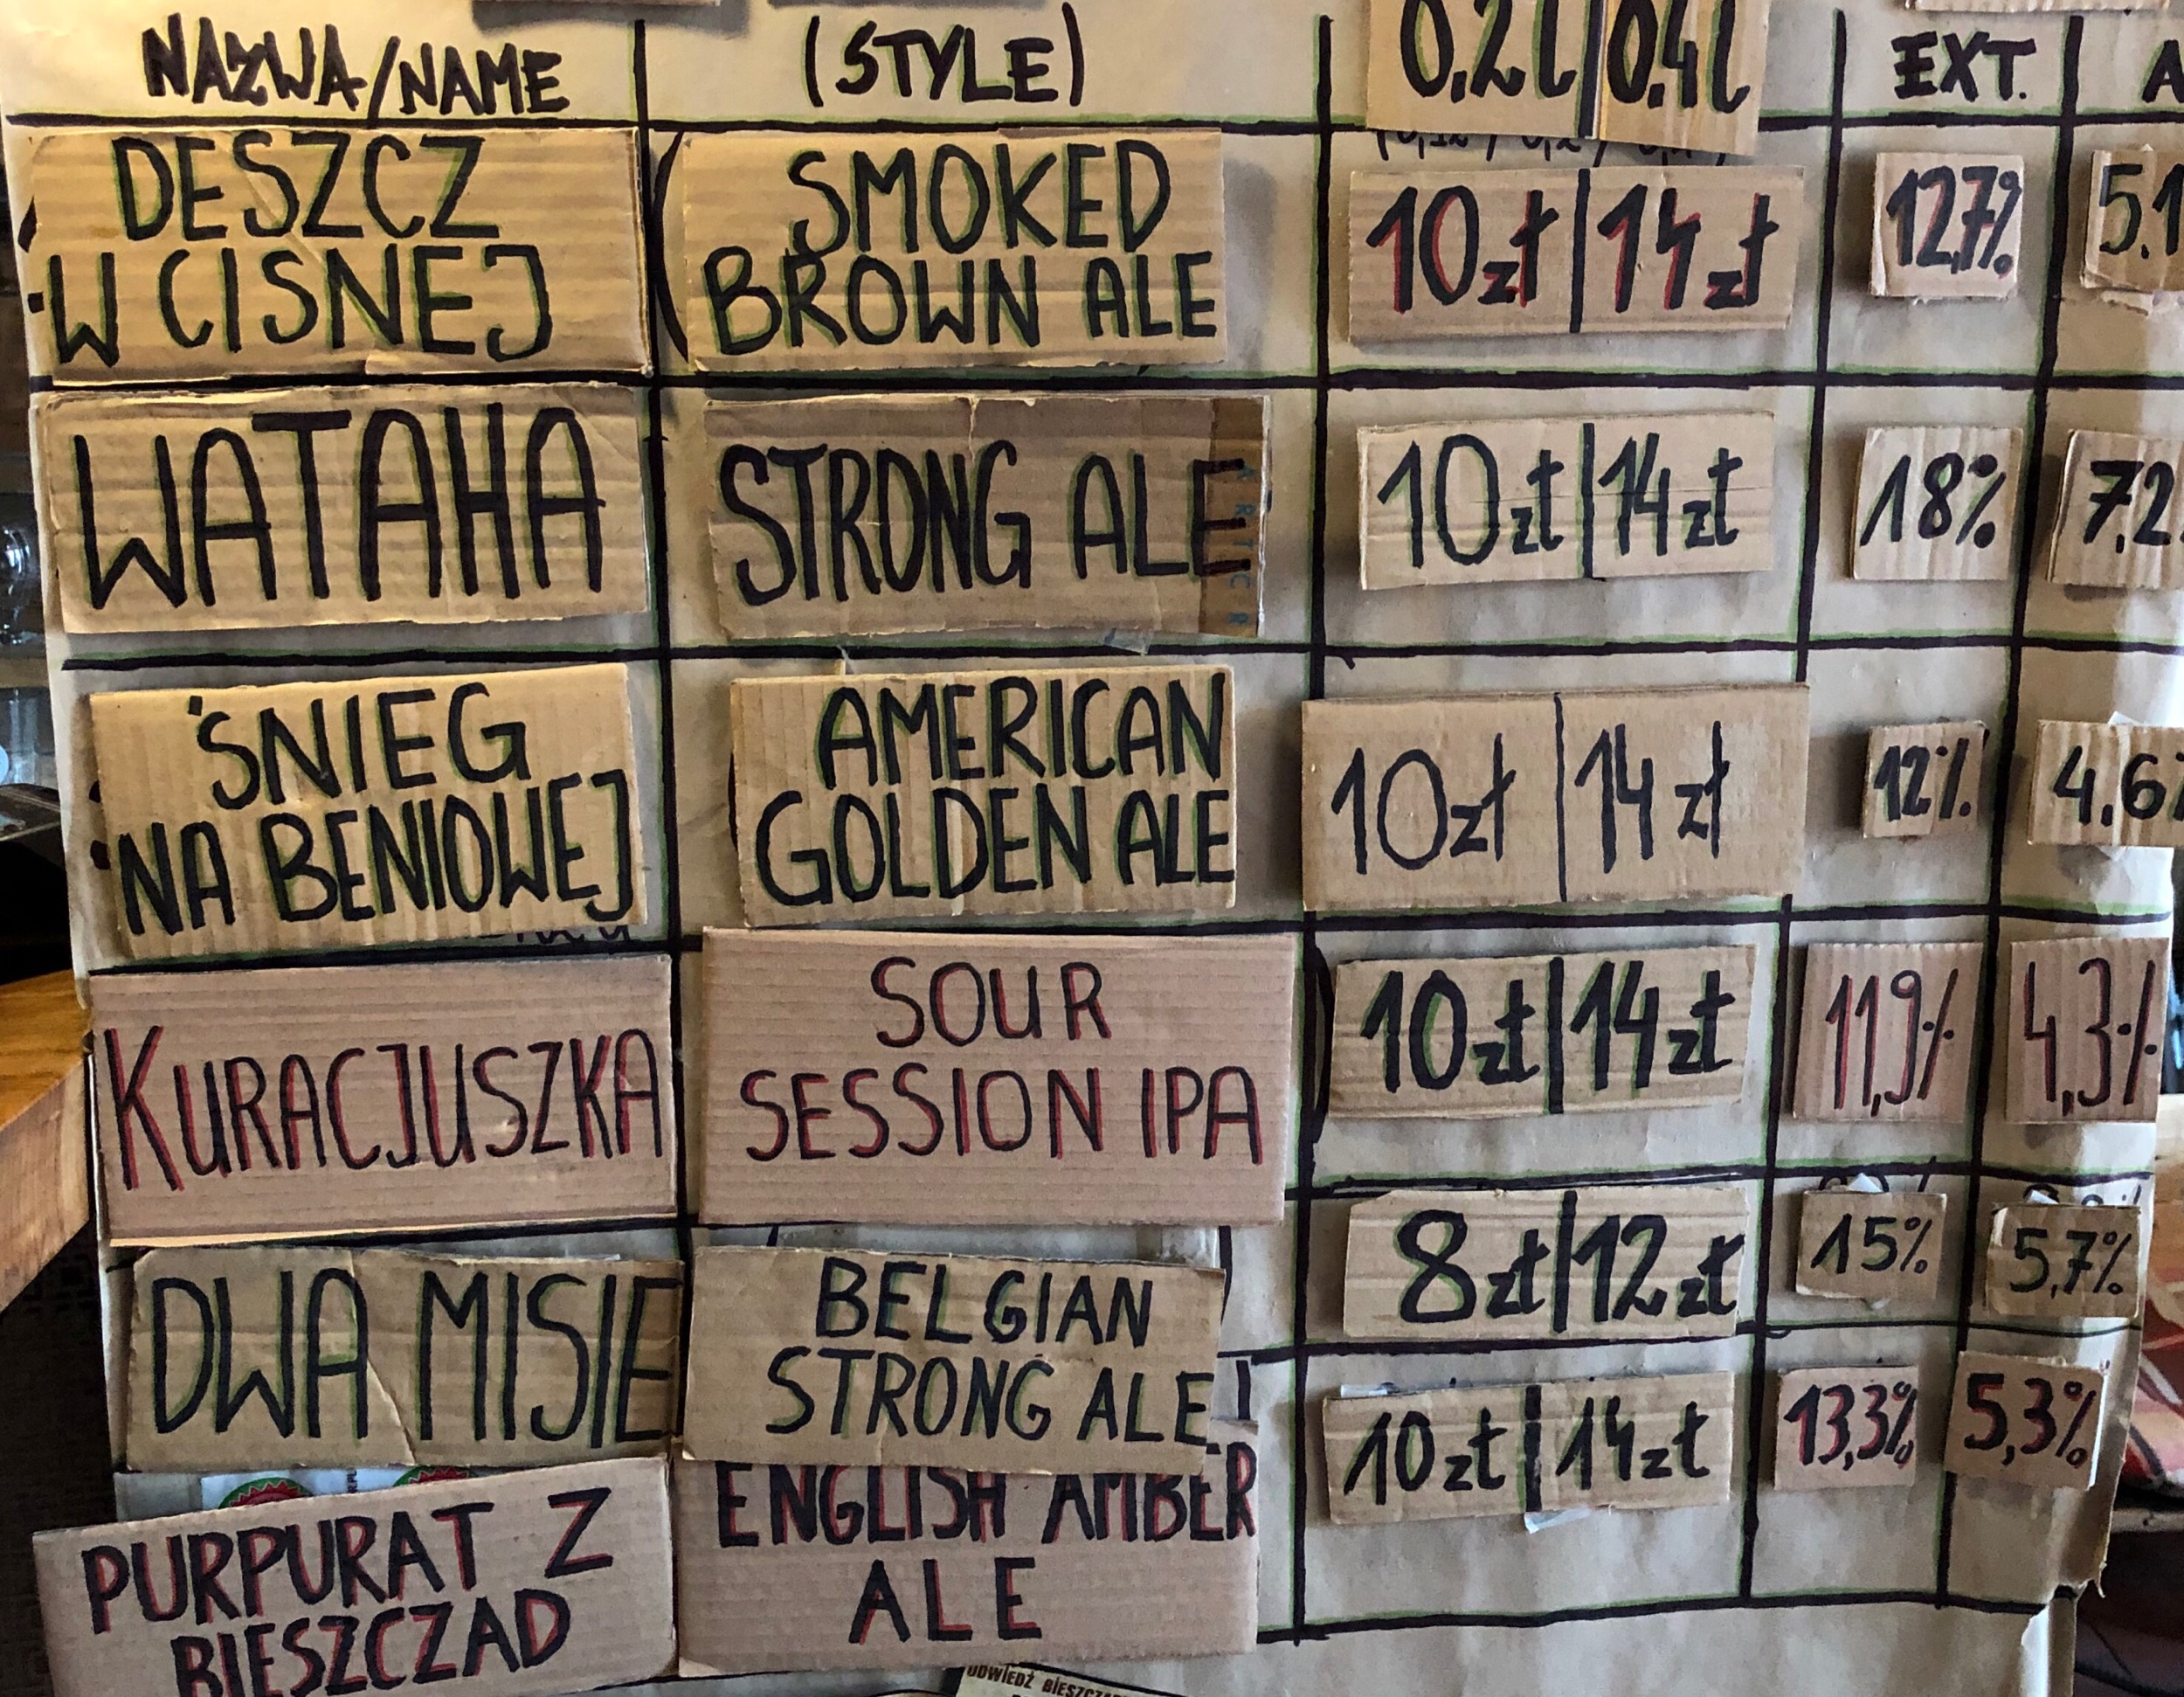 Beers pouring at Ursa Maior, a brewery in the Jewish quarter.